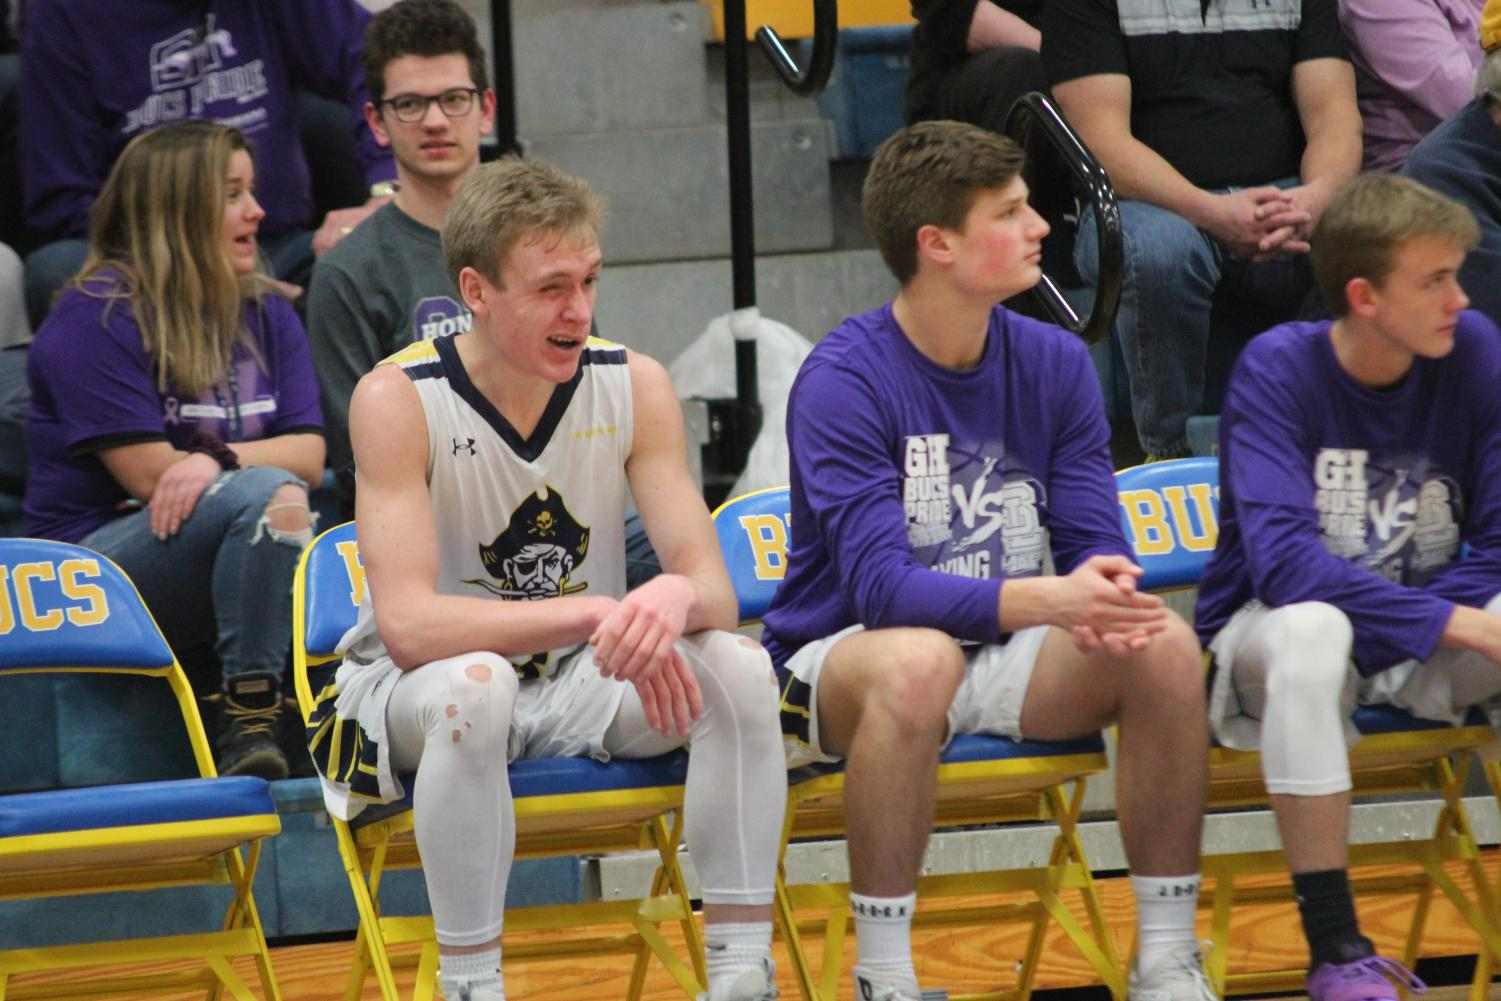 Senior Andrew Sinke shakes off his eye injury in a game against Spring Lake. Sinke is the team's sharpshooter.